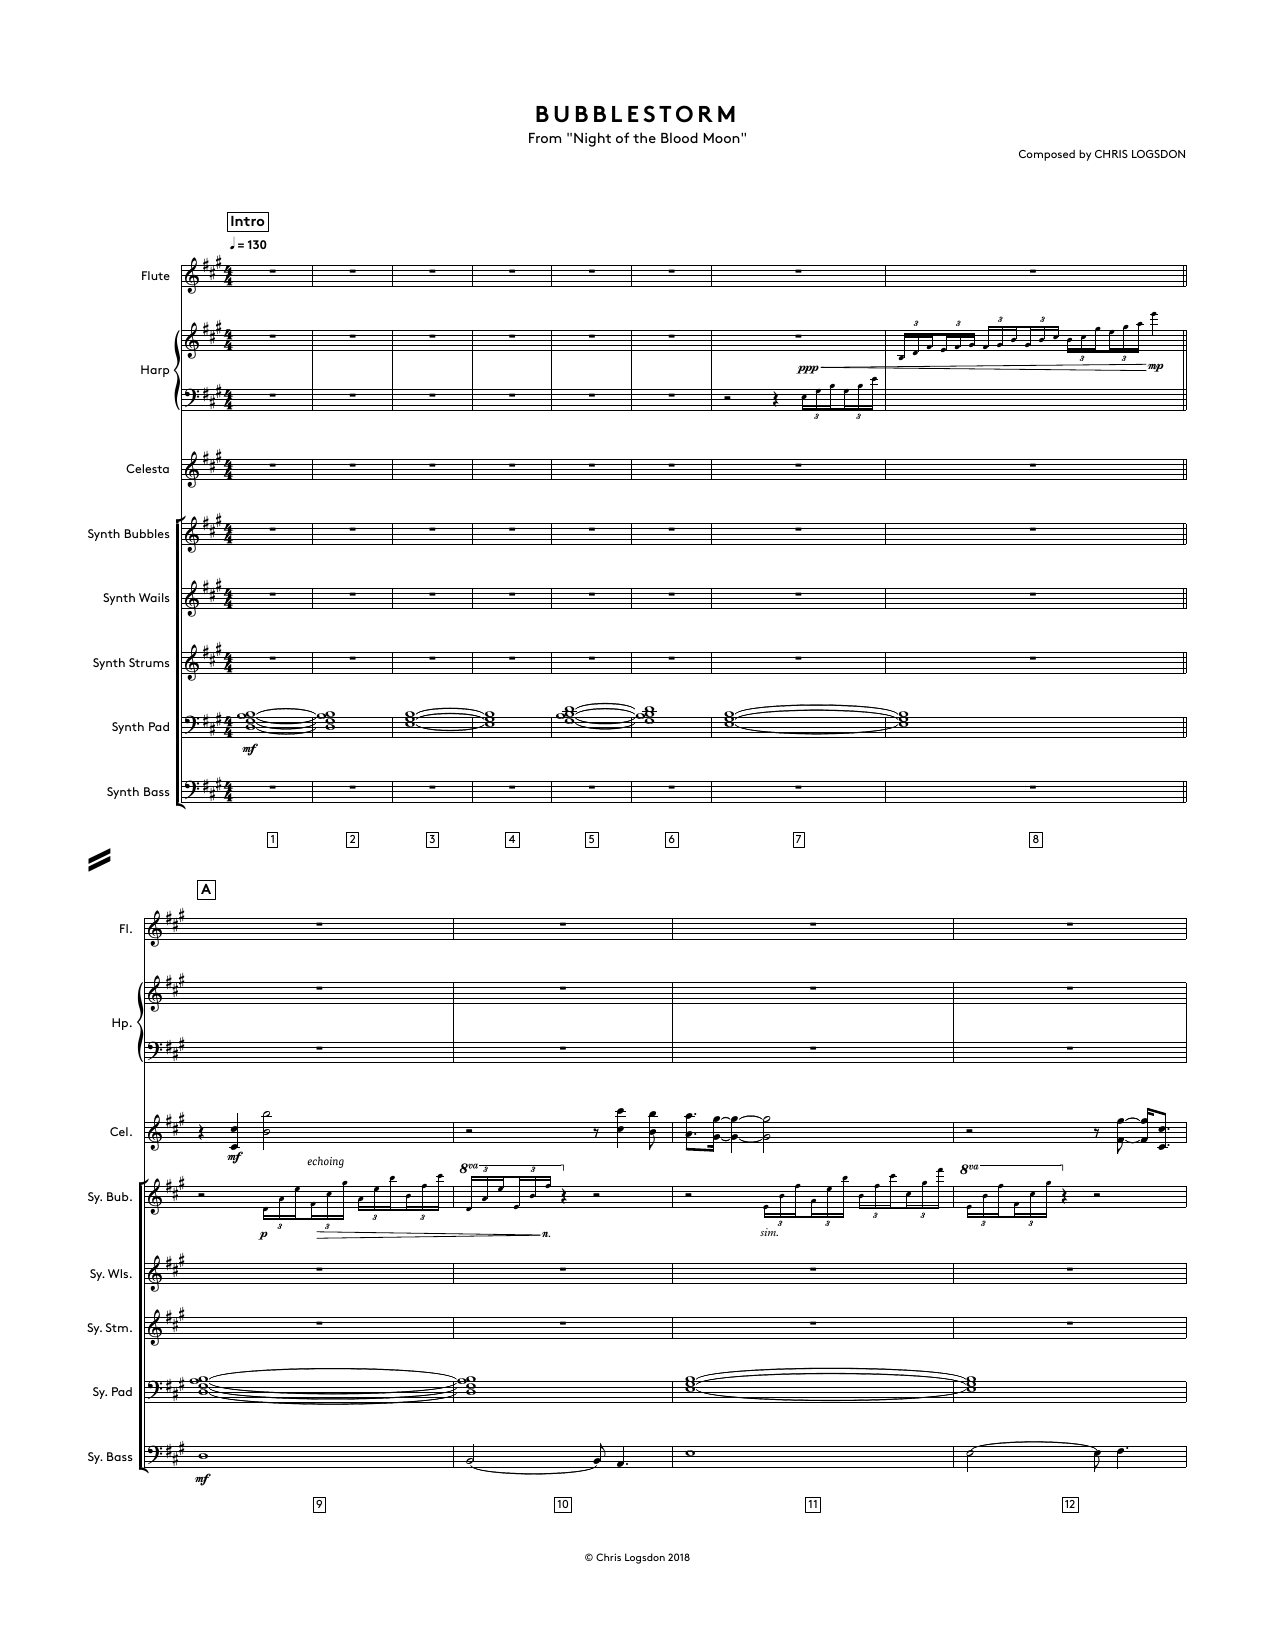 Chris Logsdon Bubblestorm (from Night of the Blood Moon) - Full Score sheet music notes and chords. Download Printable PDF.